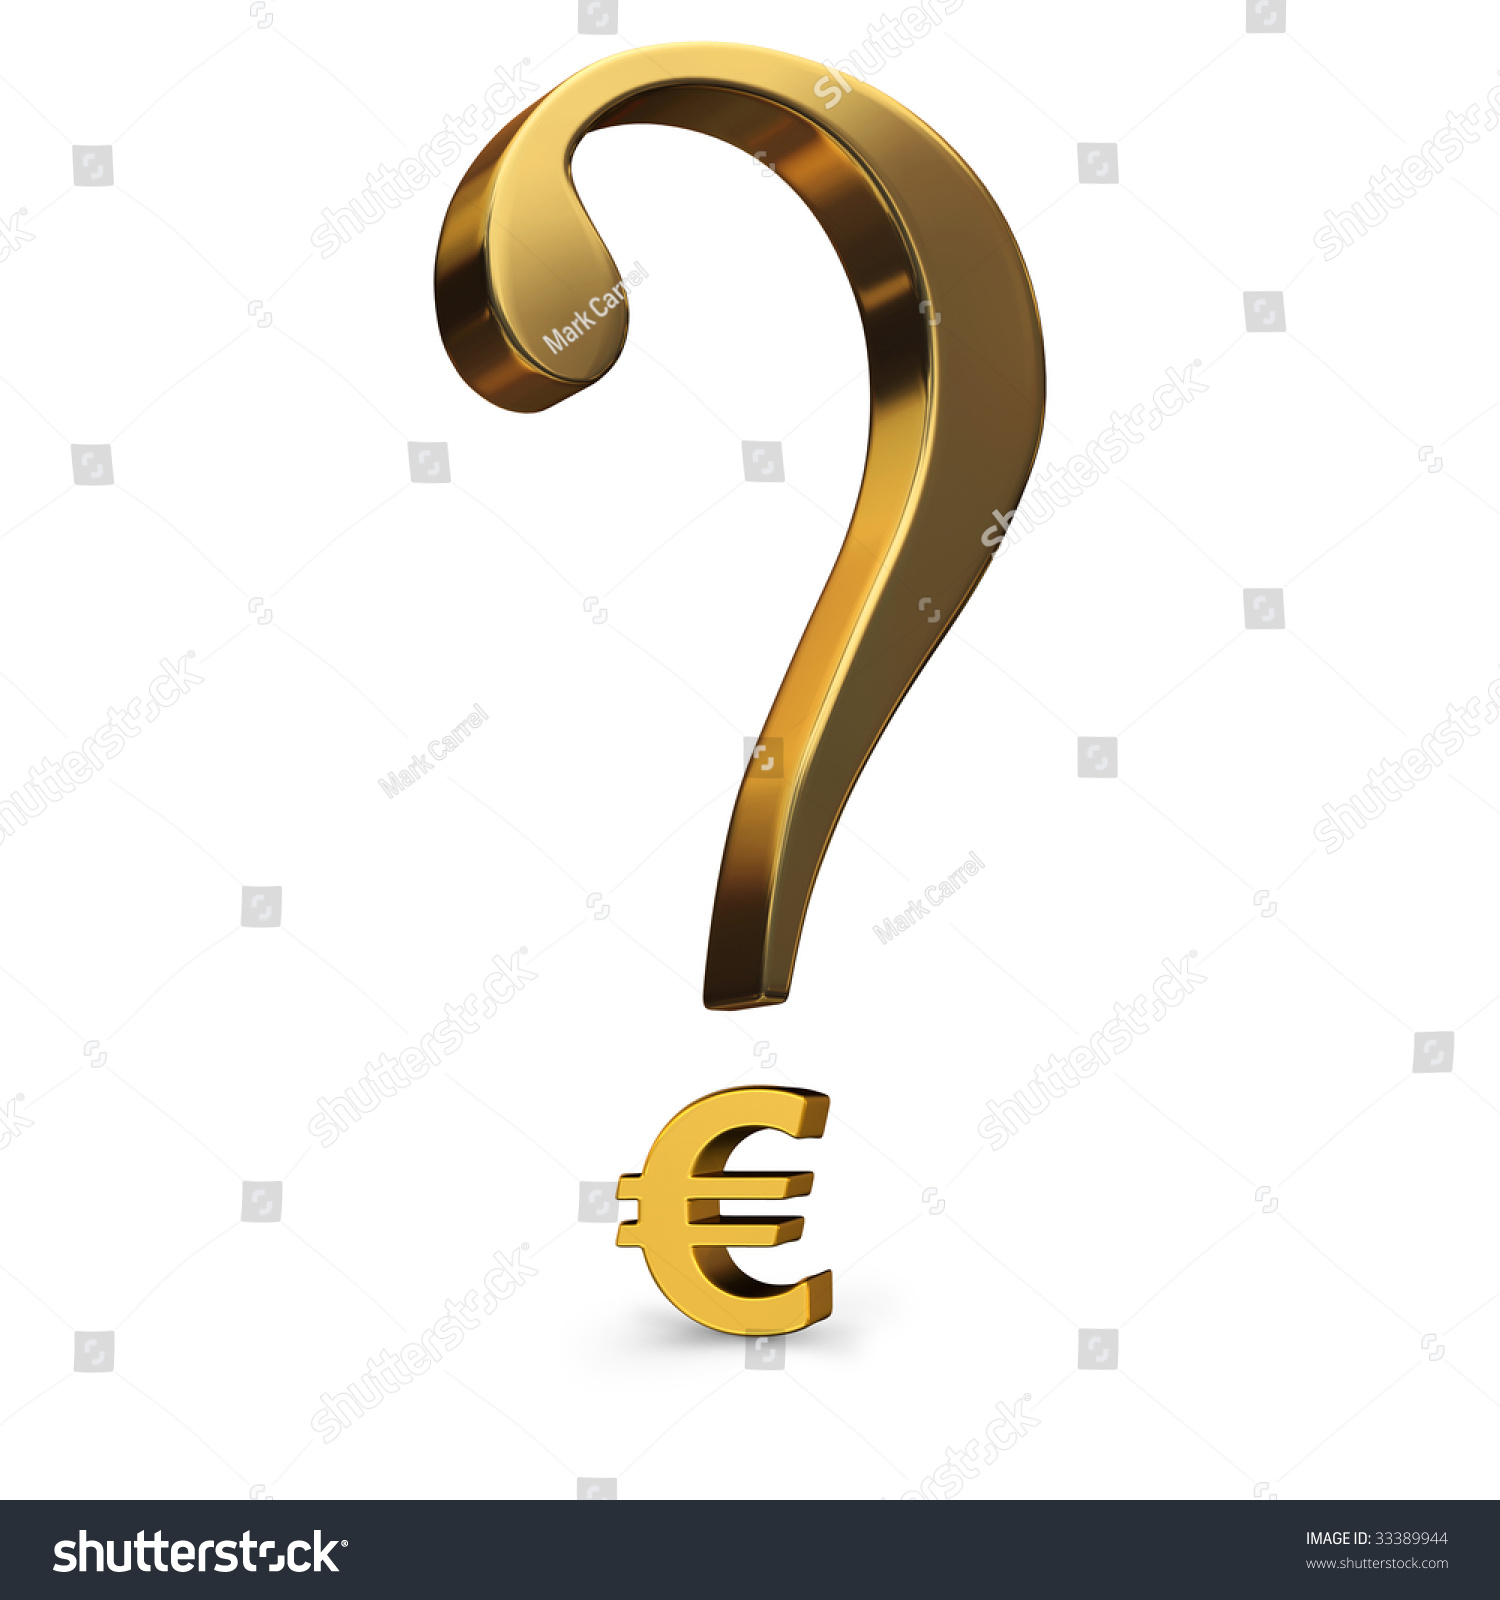 Euro symbol font image collections symbol and sign ideas gold question mark incorporating euro symbol stock illustration a gold question mark incorporating a euro symbol buycottarizona